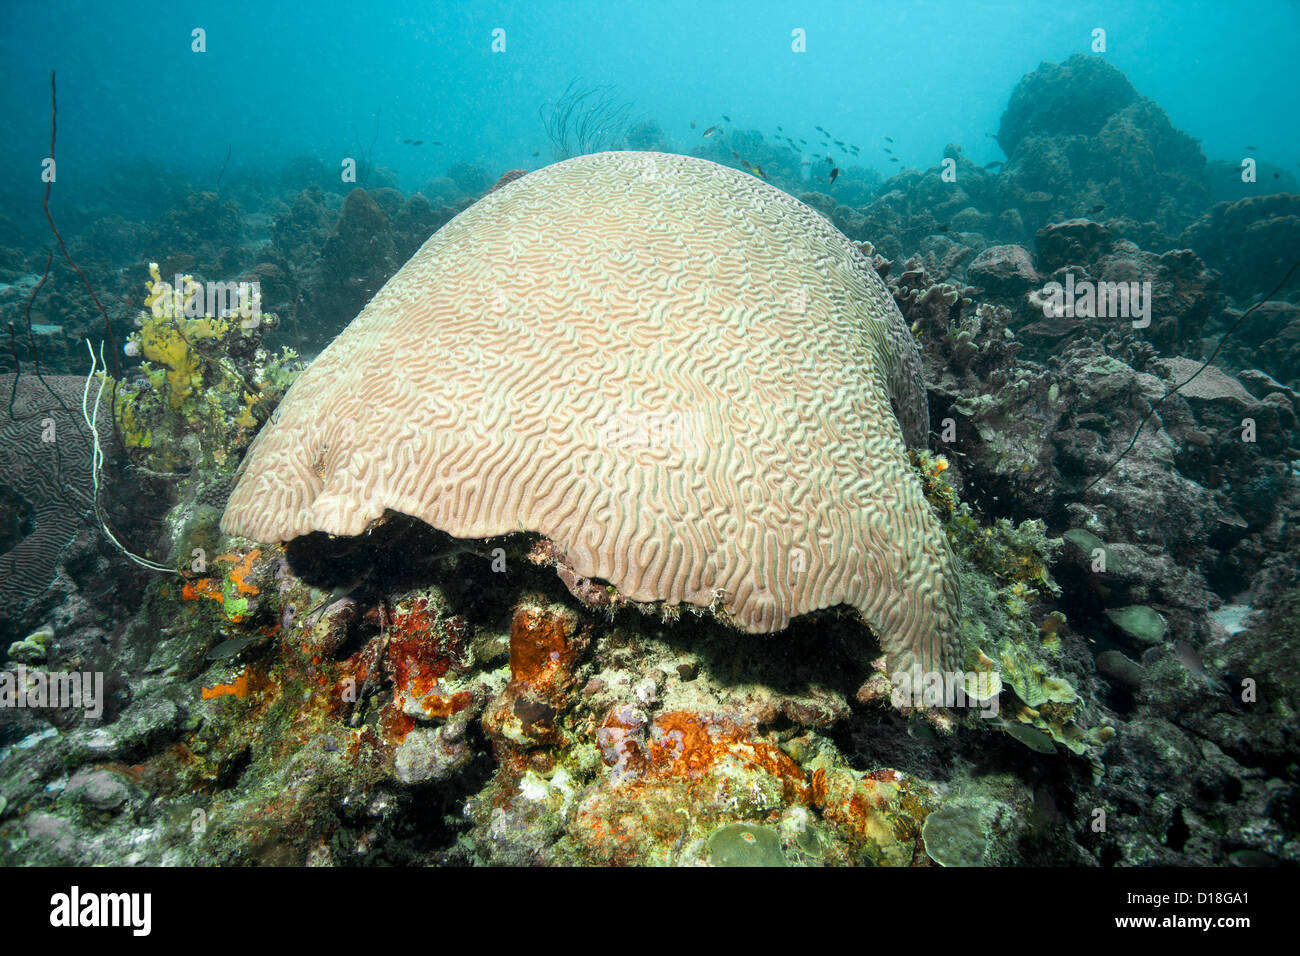 Brain coral at underwater reef - Stock Image